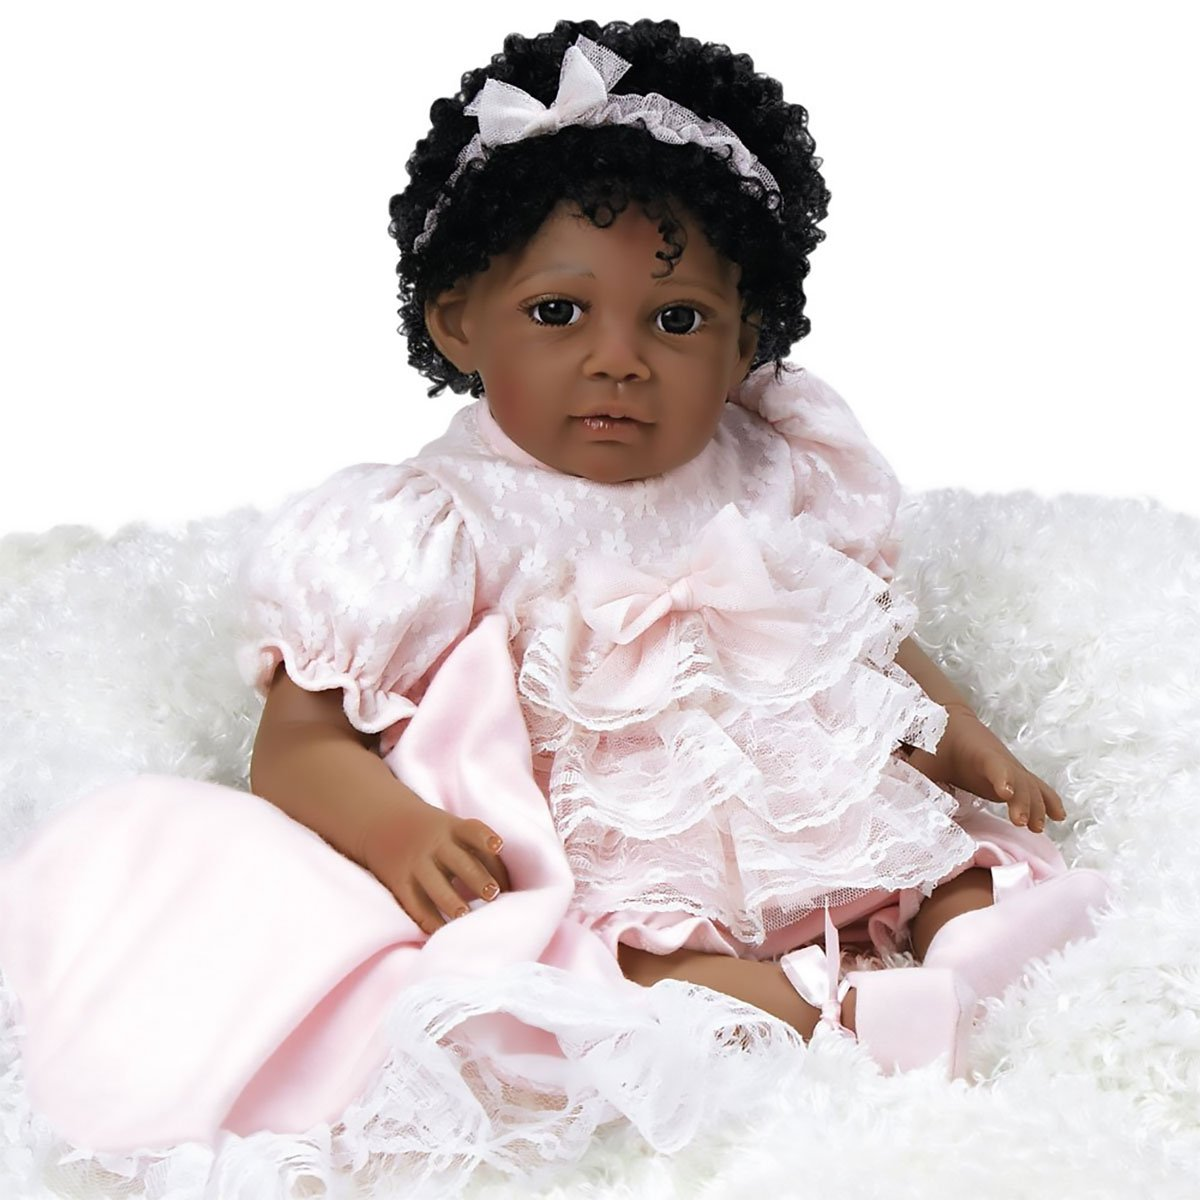 14 Black Baby Dolls That Look Real